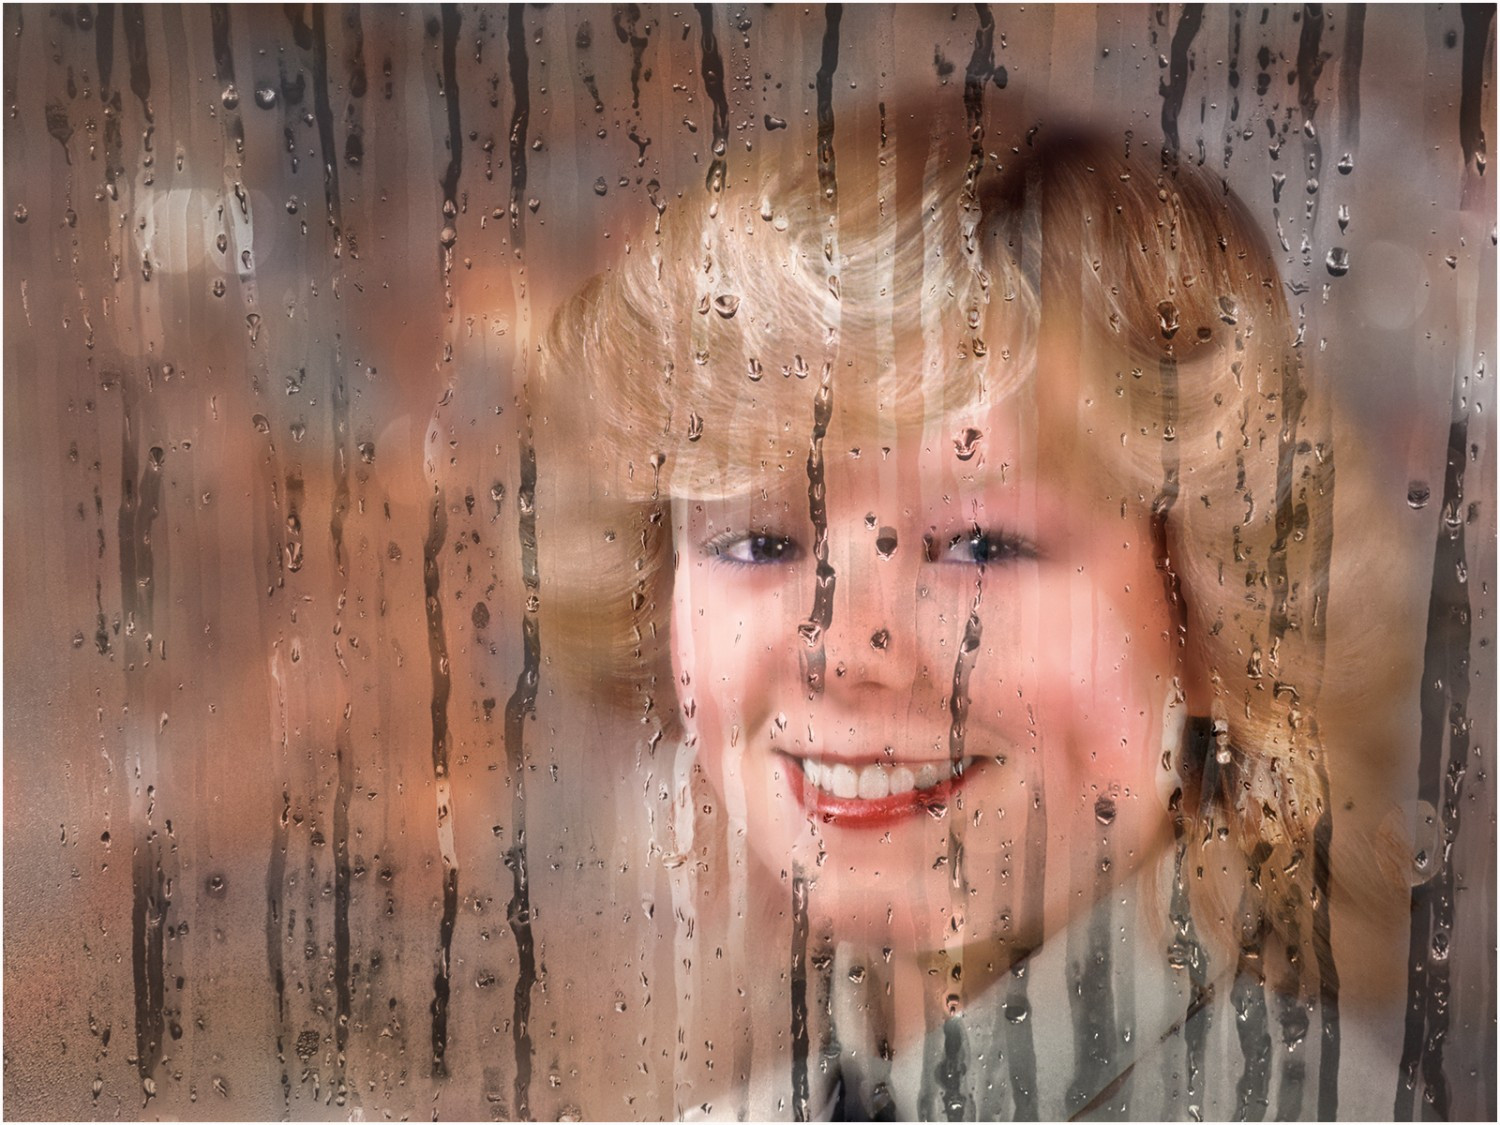 Girl Behind wet glass